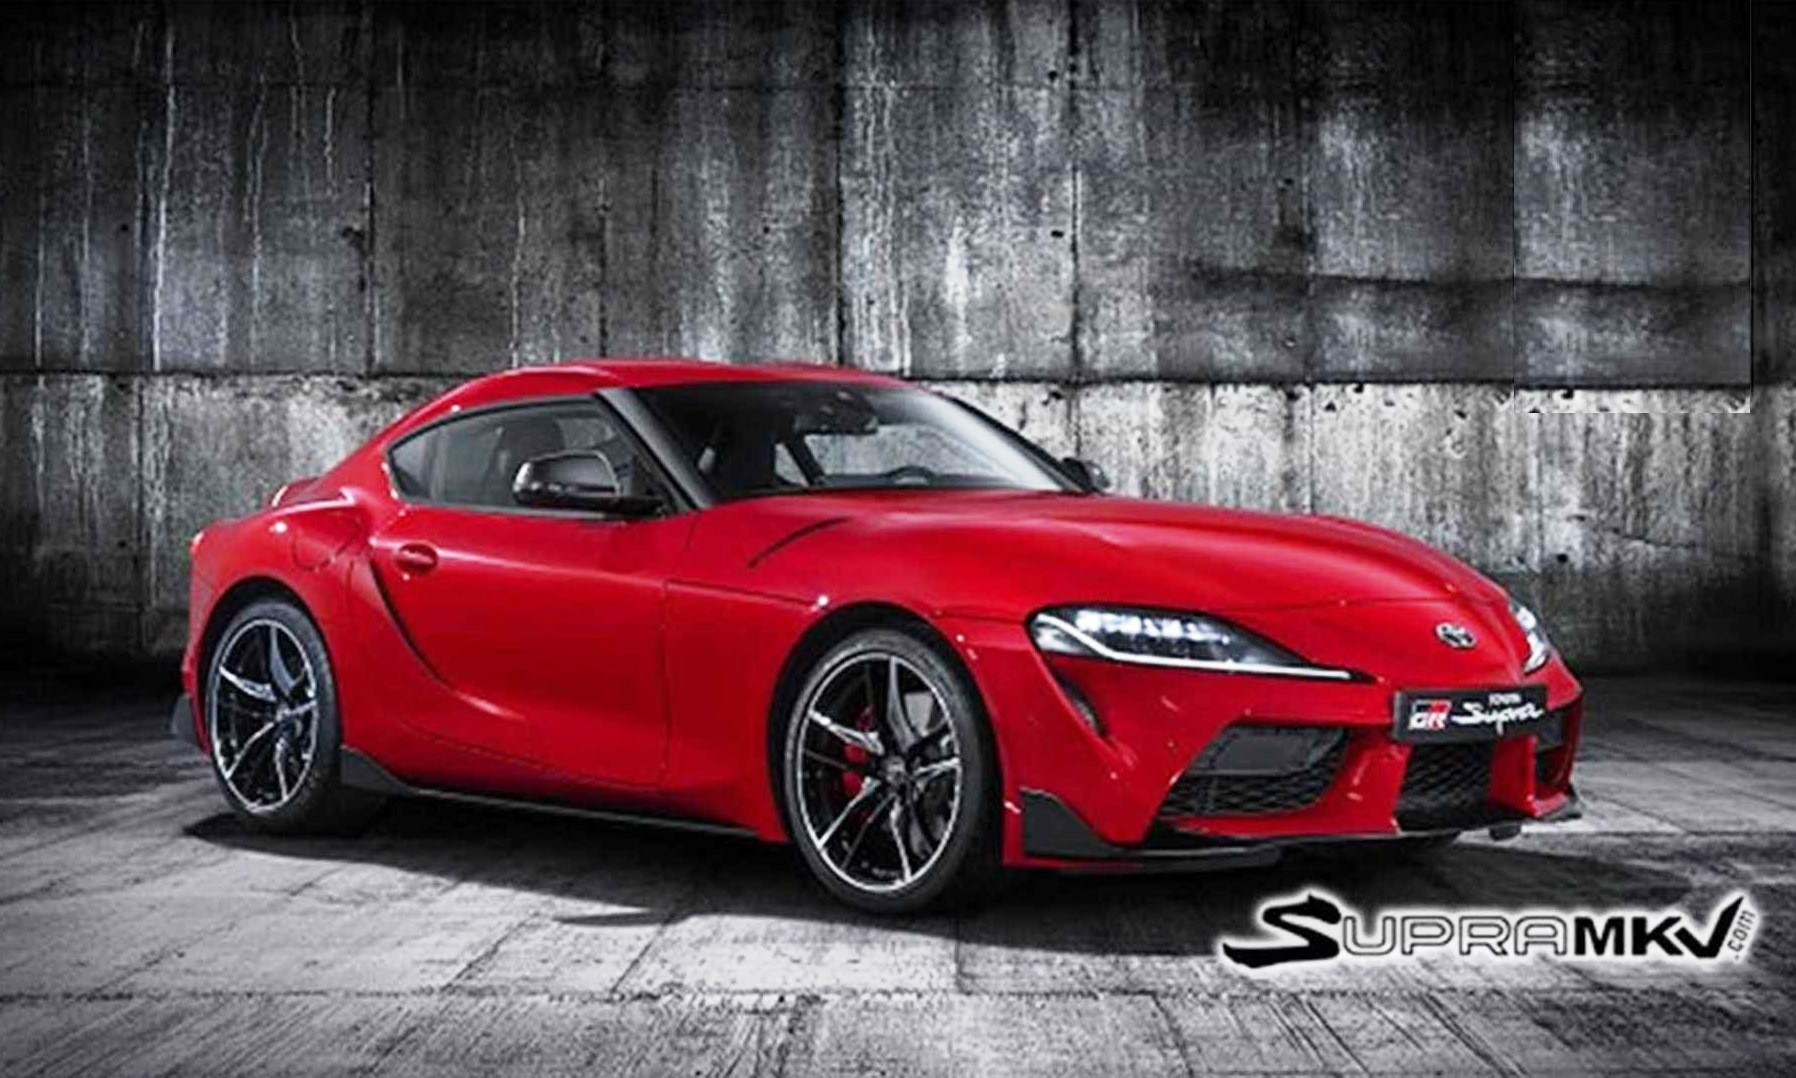 Toyota Supra images leaked